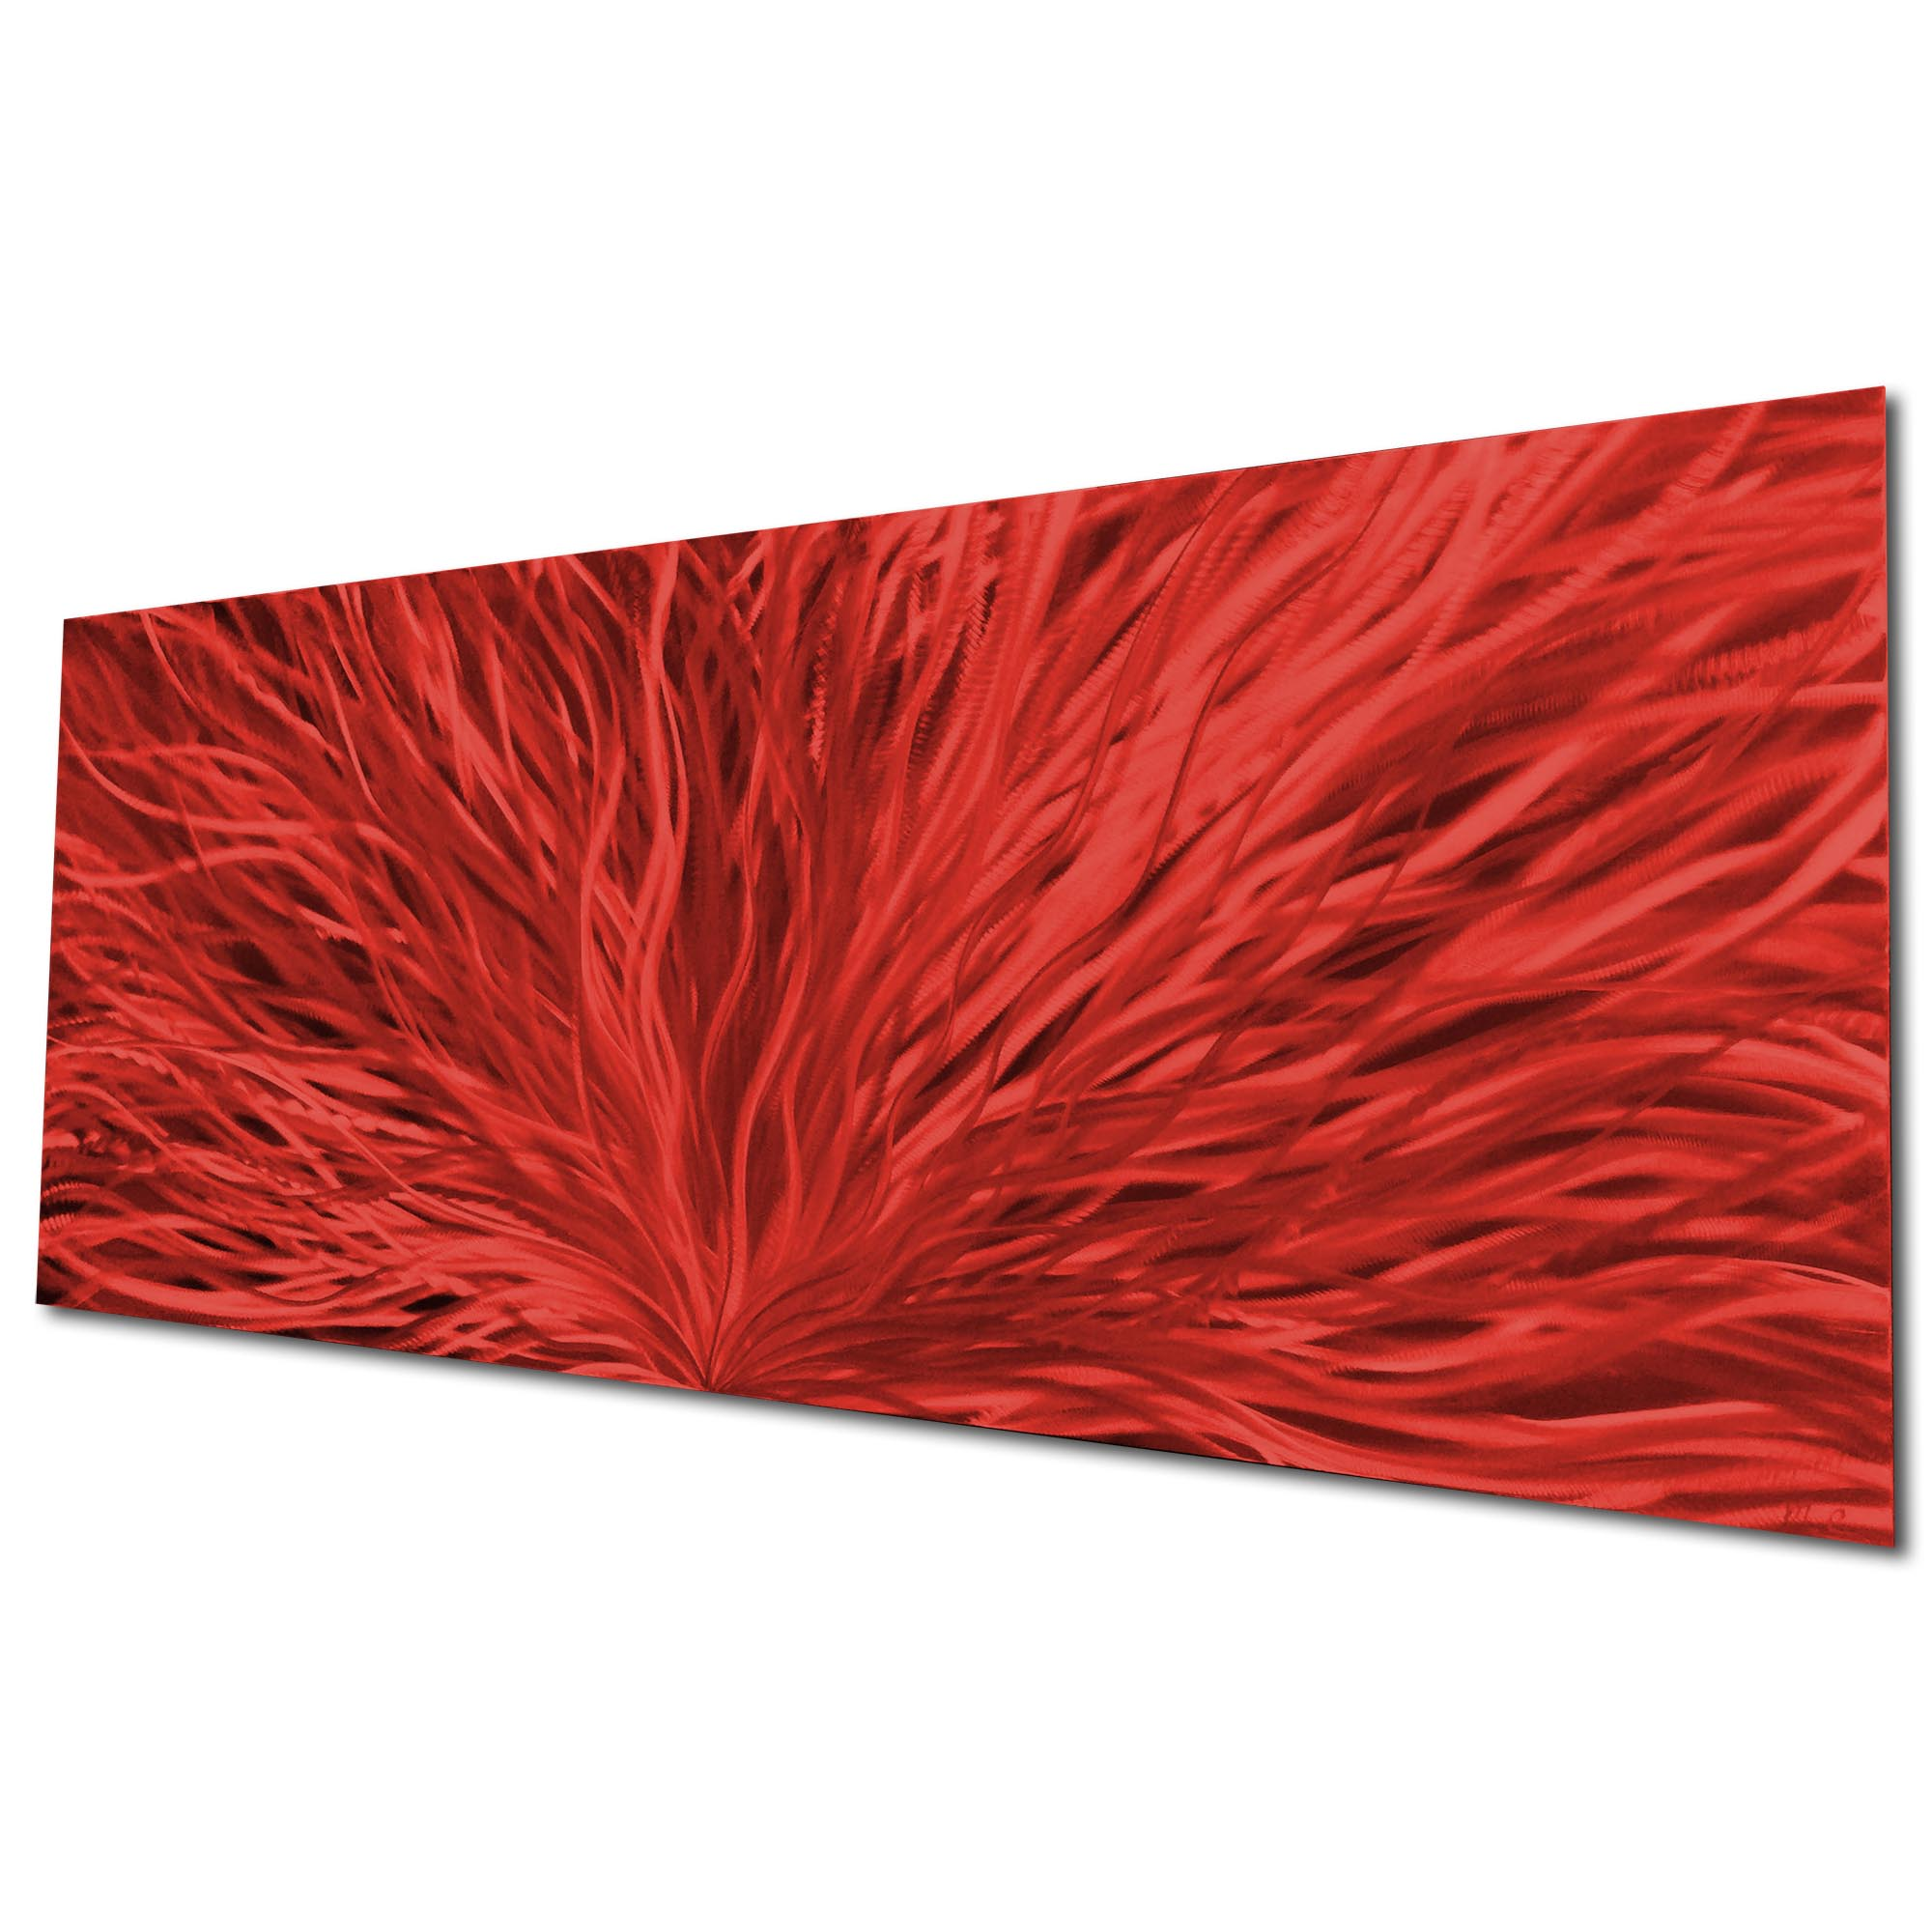 Blooming Red by Helena Martin - Original Abstract Art on Ground and Painted Metal - Image 3